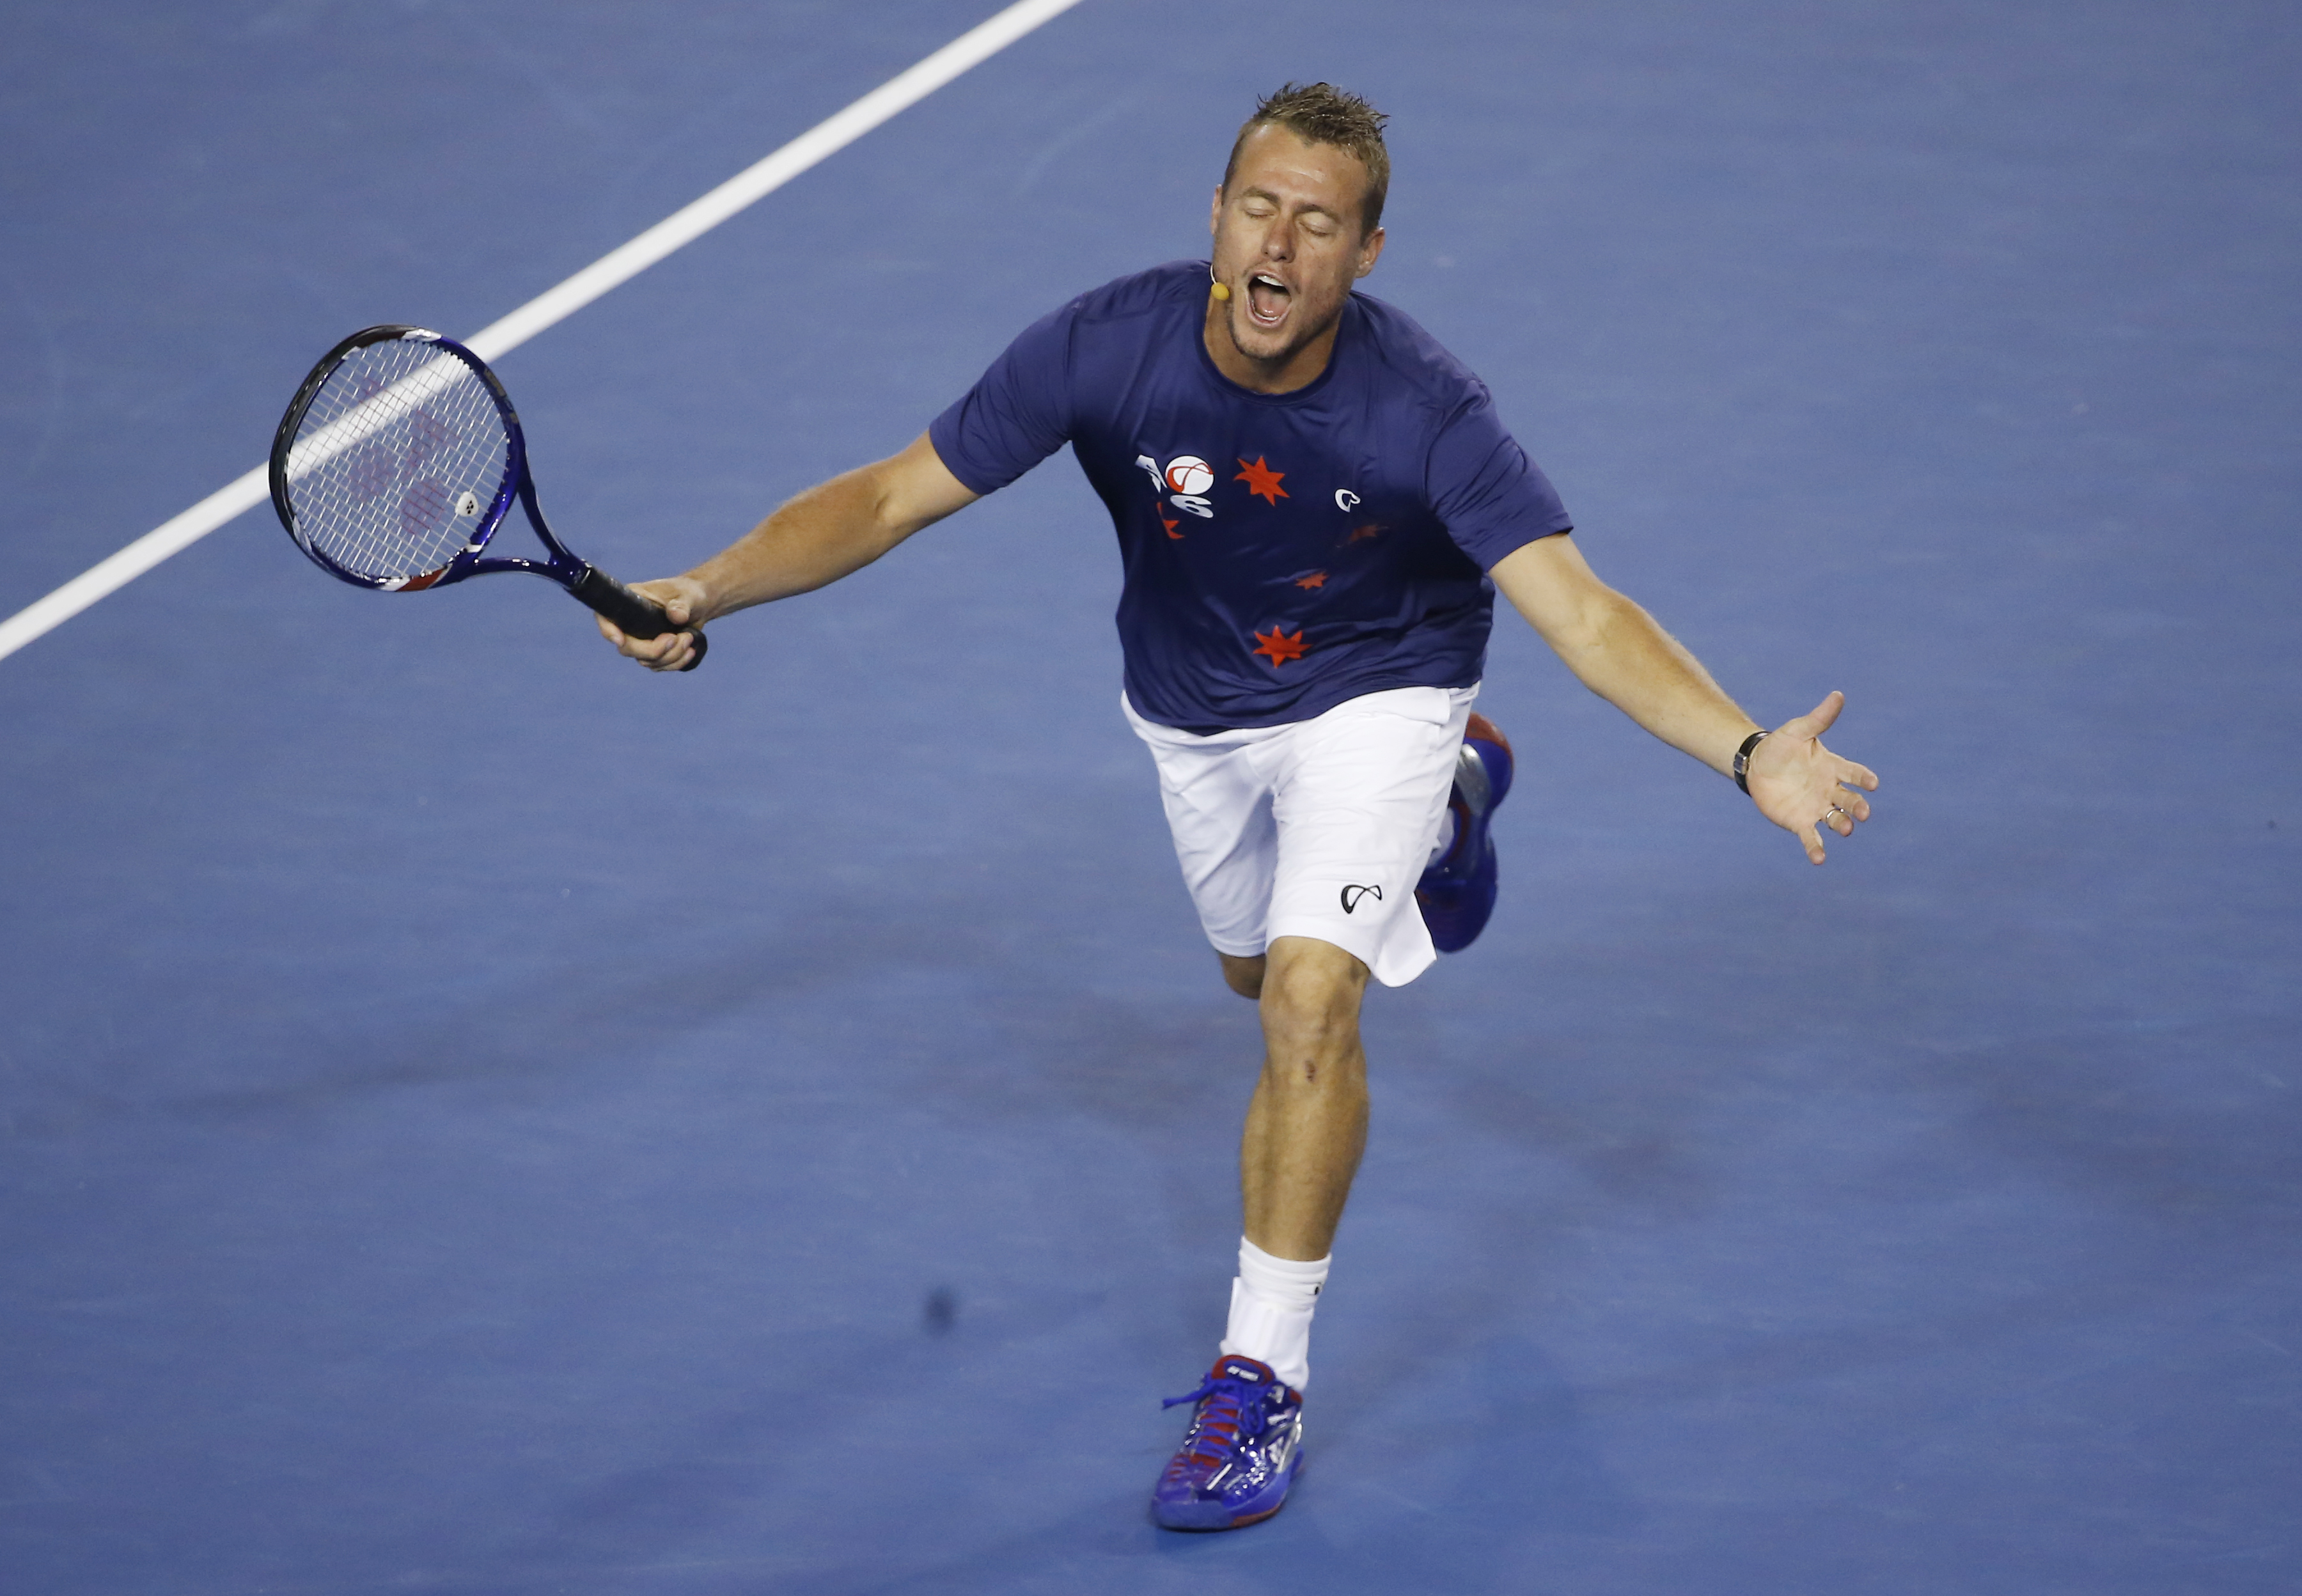 Australia's Lleyton Hewitt reacts during Kids Tennis Day, an exhibition event on Rod Laver Arena ahead of the Australian Open tennis championships in Melbourne, Australia, Saturday, Jan. 16, 2016.(AP Photo/Vincent Thian)